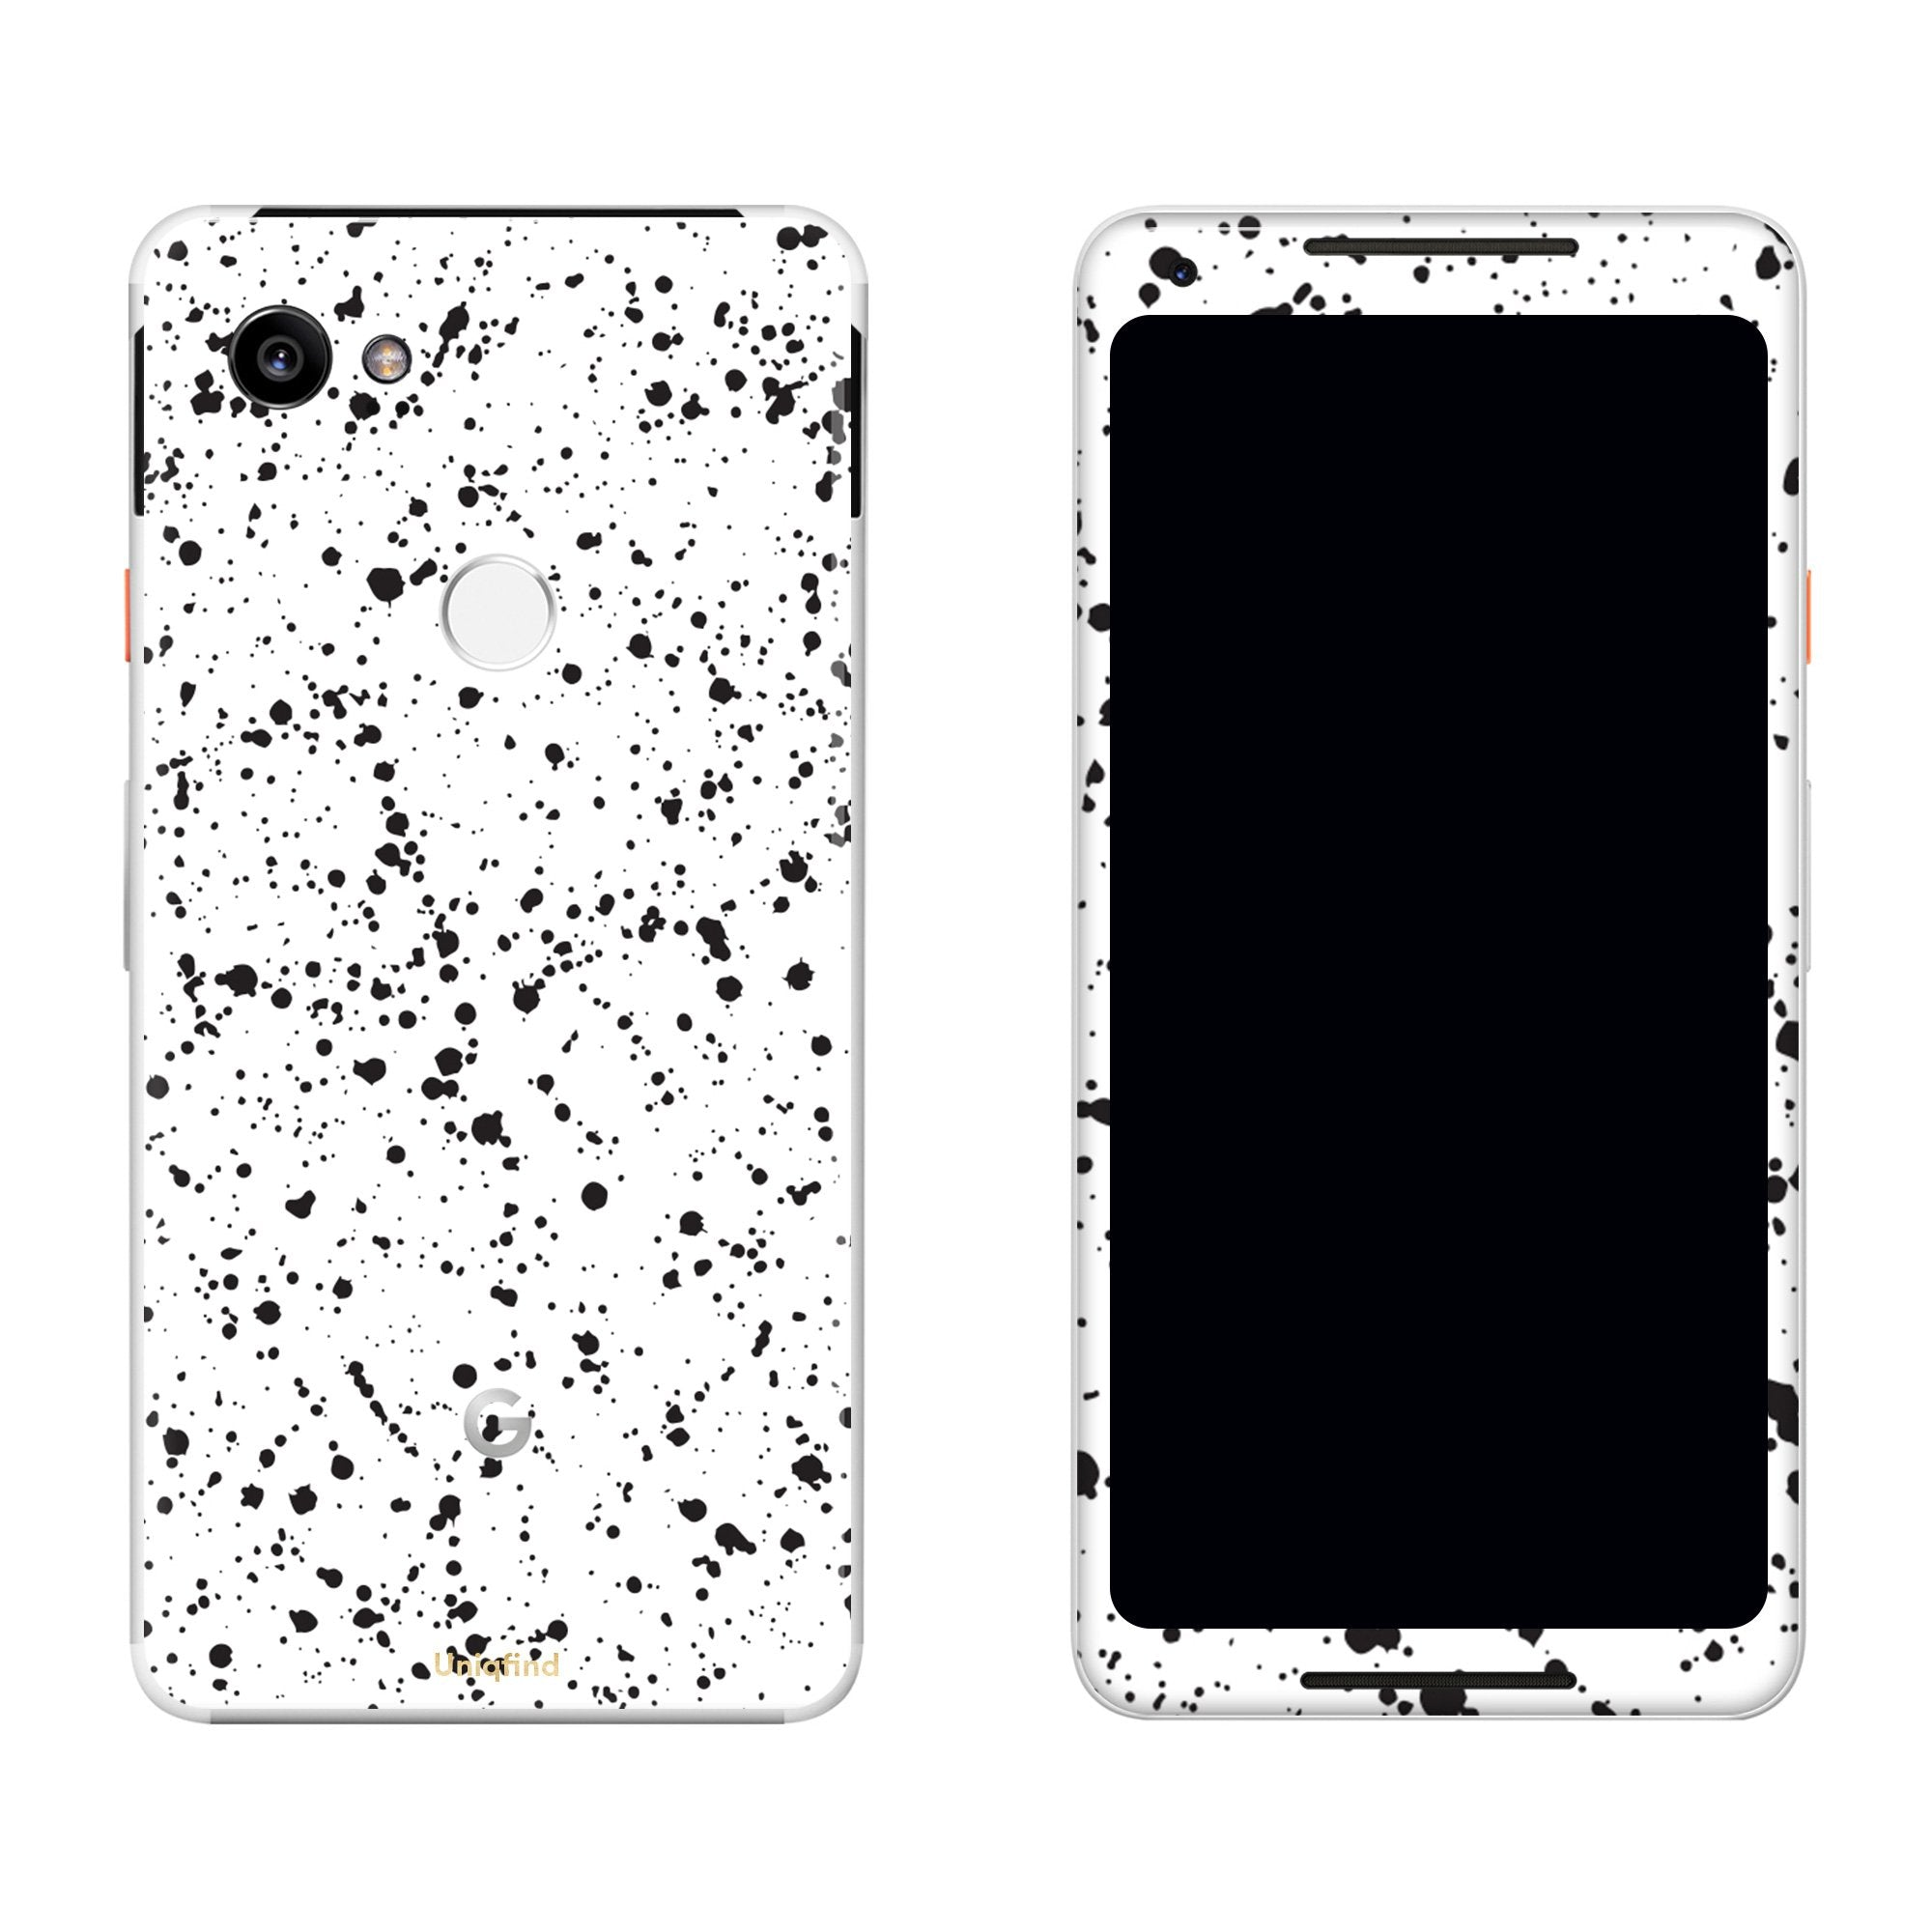 White Speckle Pixel 2 XL Skin + Case